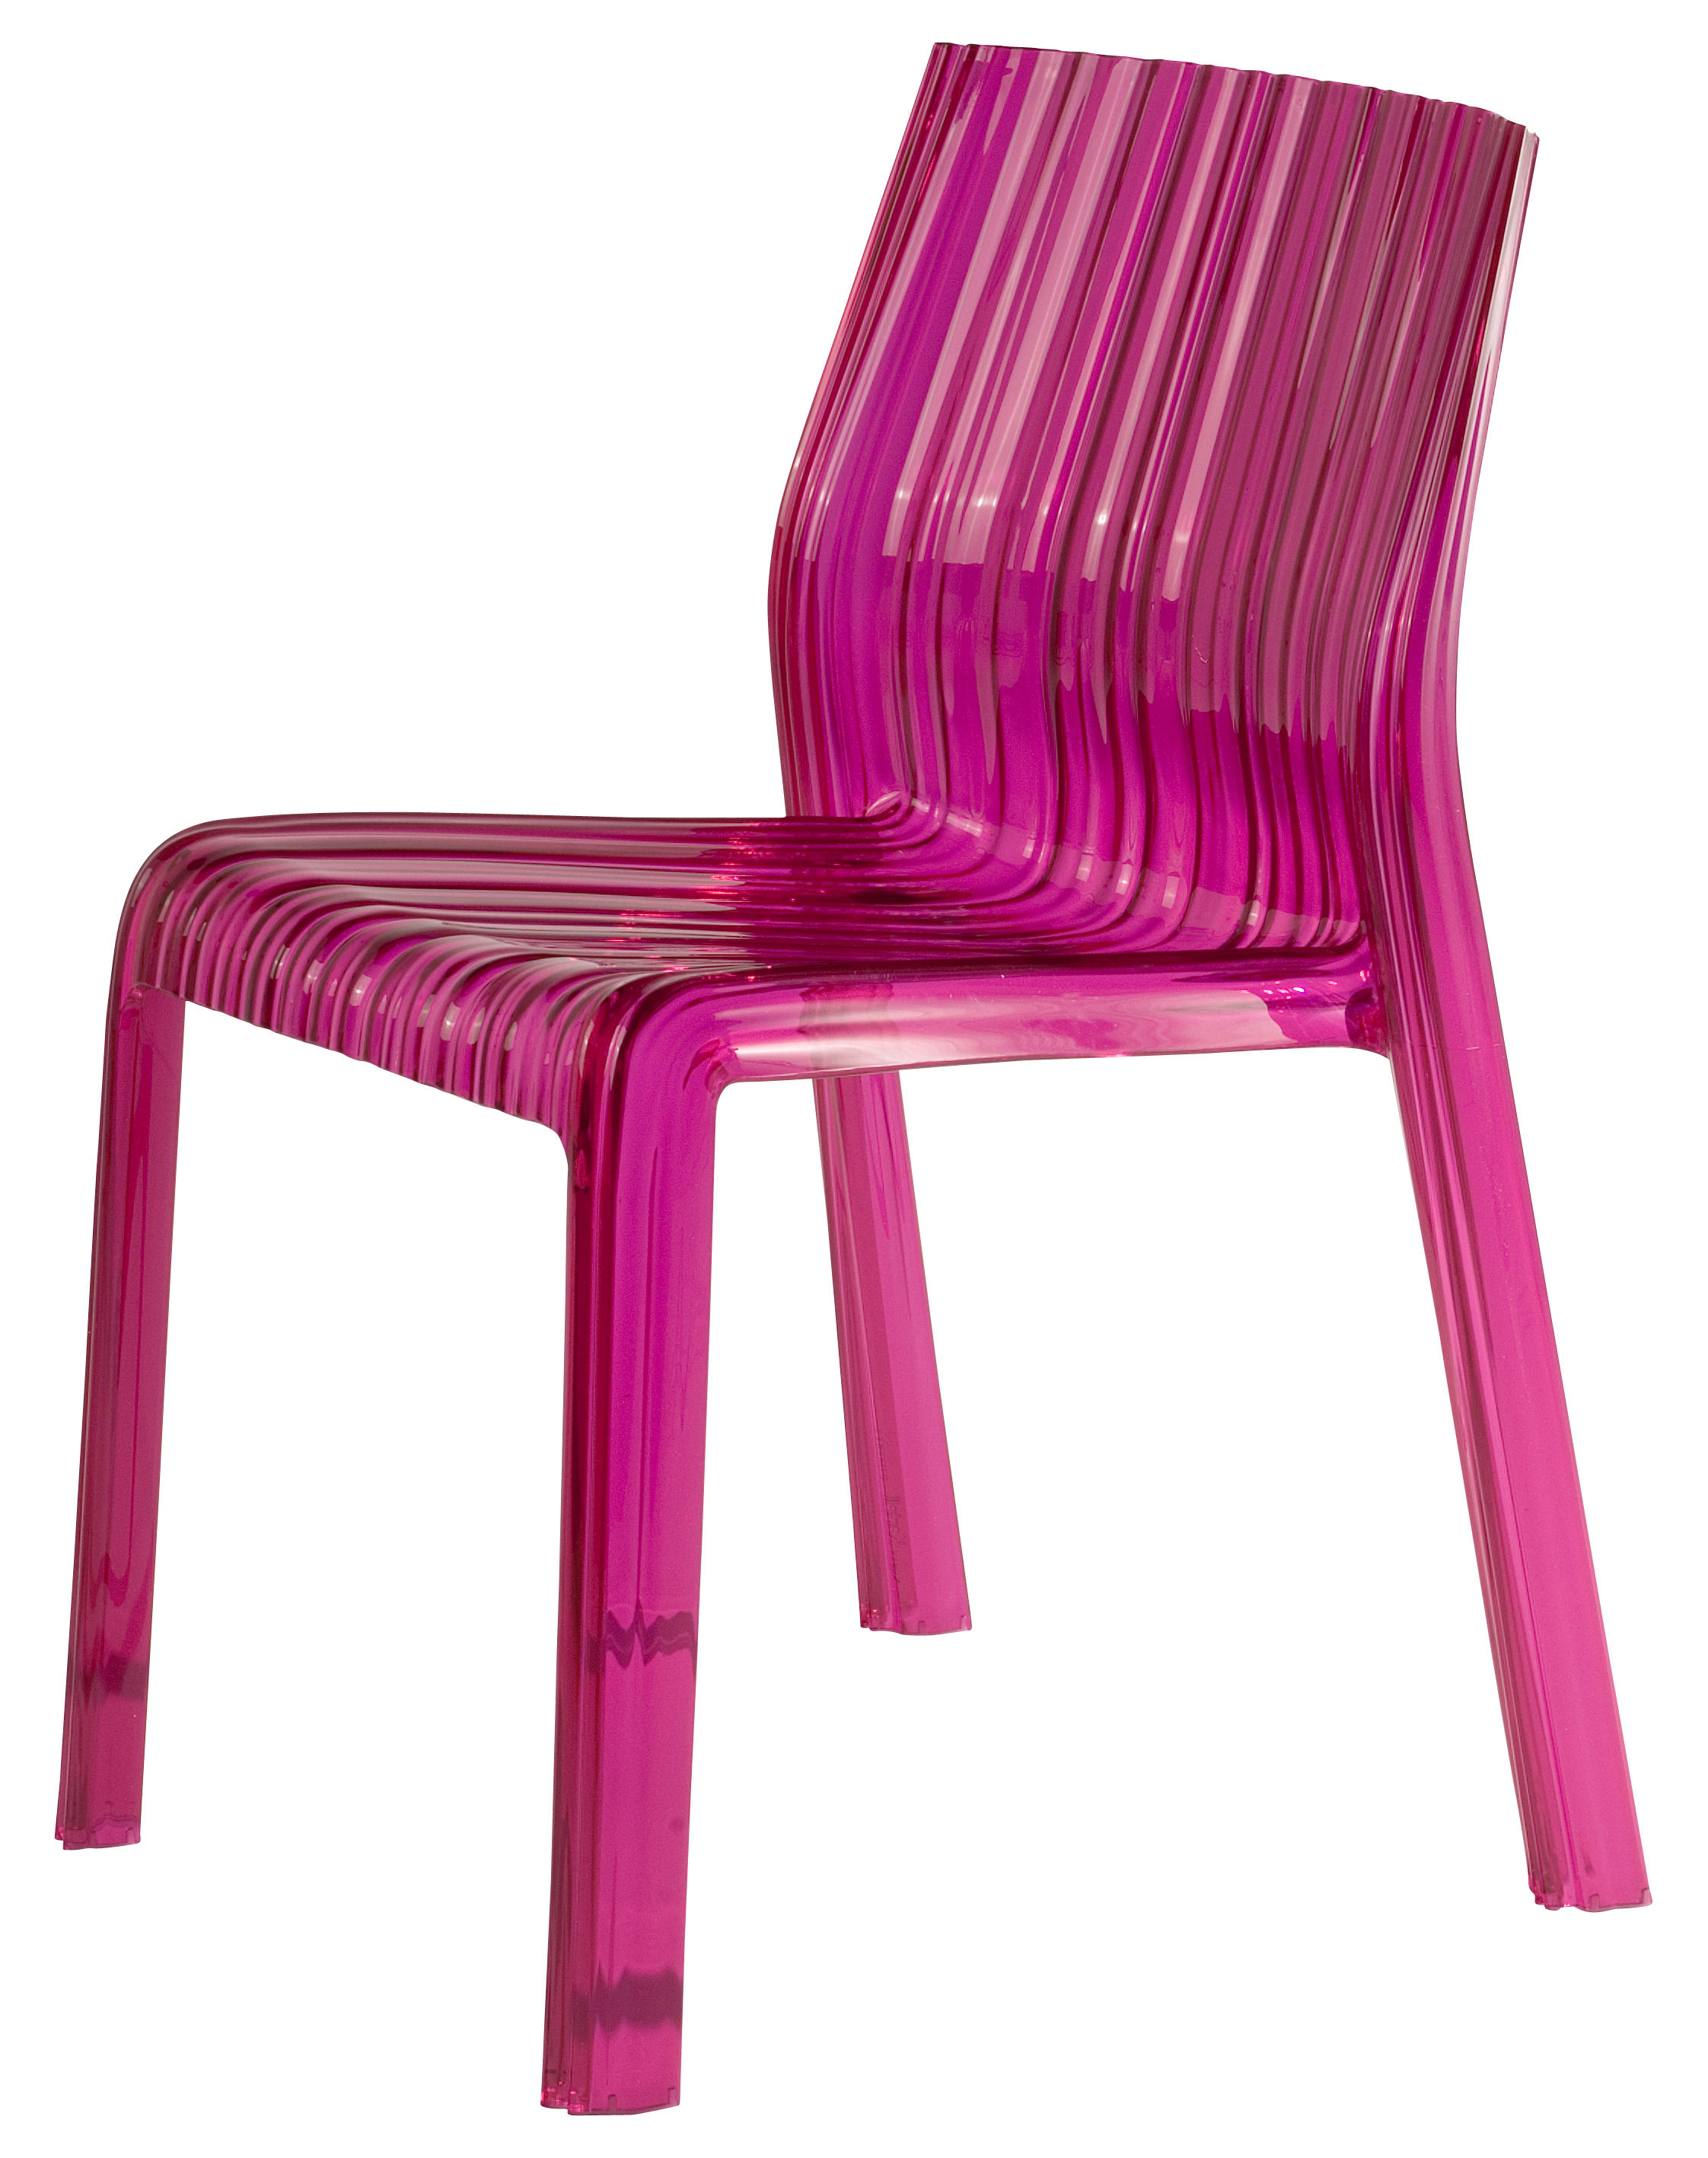 Furniture - Chairs - Frilly Stacking chair - Polycarbonate by Kartell - Transparent fuchsia - Polycarbonate